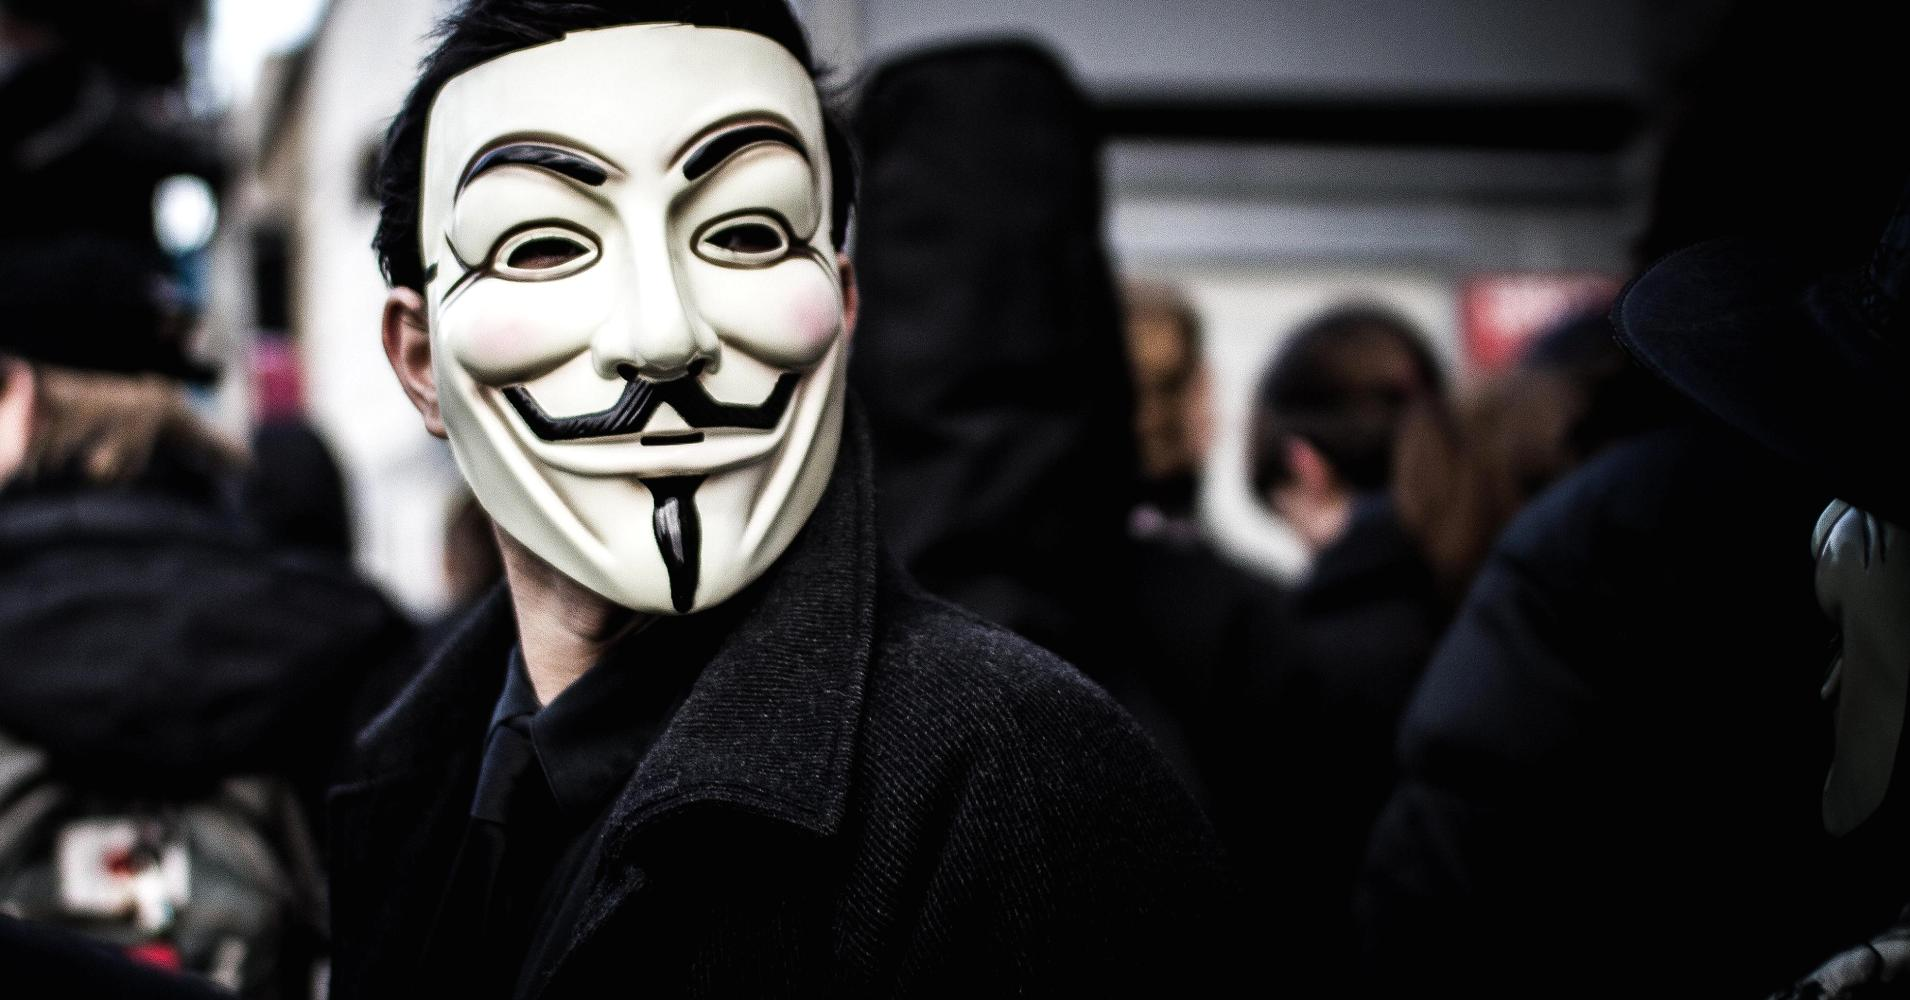 When you use TOR to access the Deep Web you become completely anonymous.